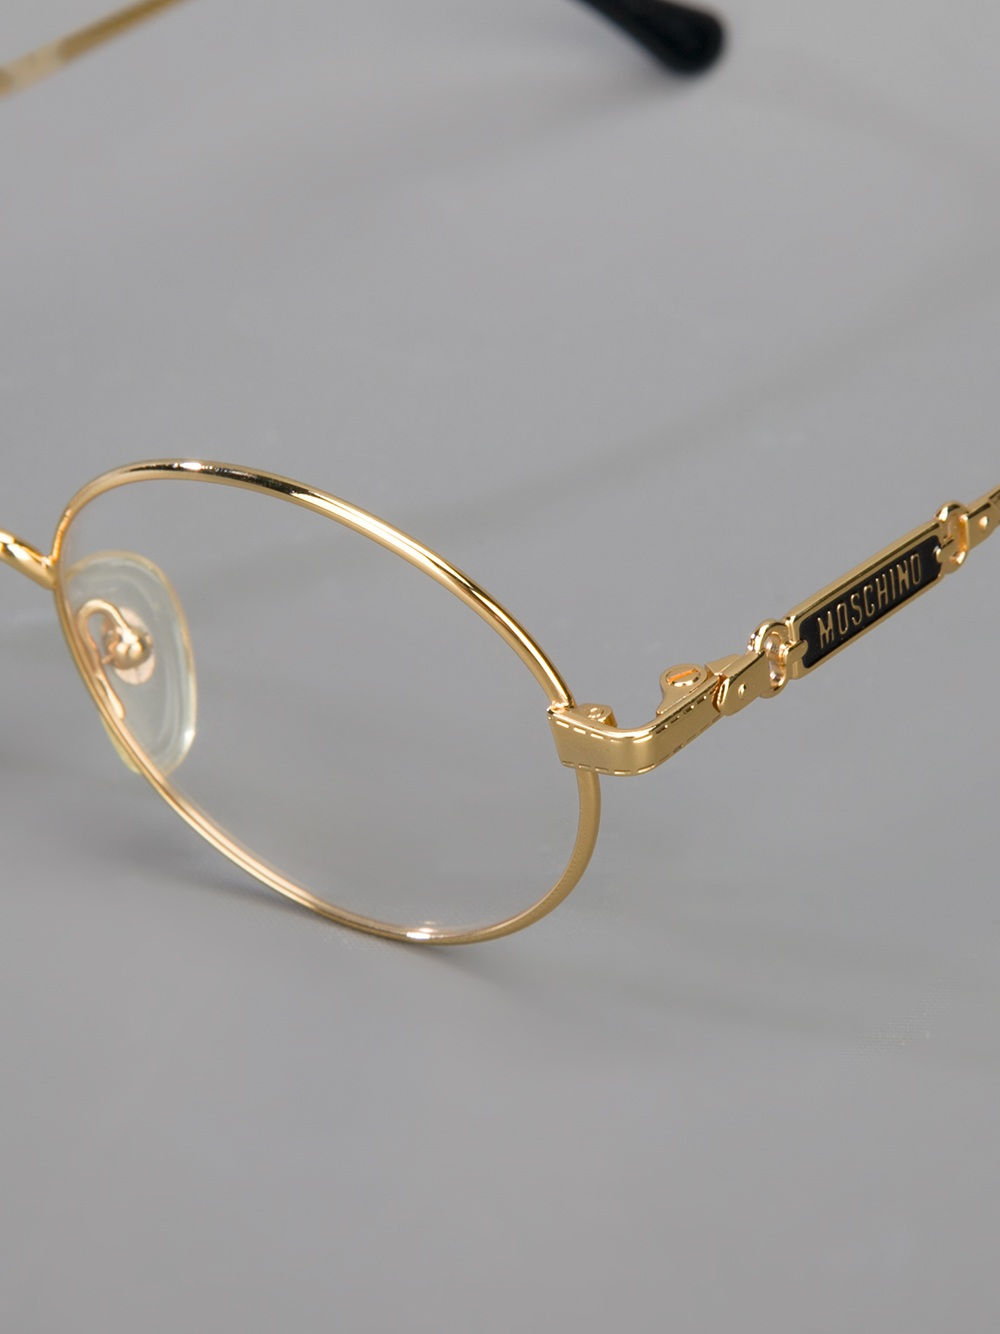 Vintage Frame Glasses 87